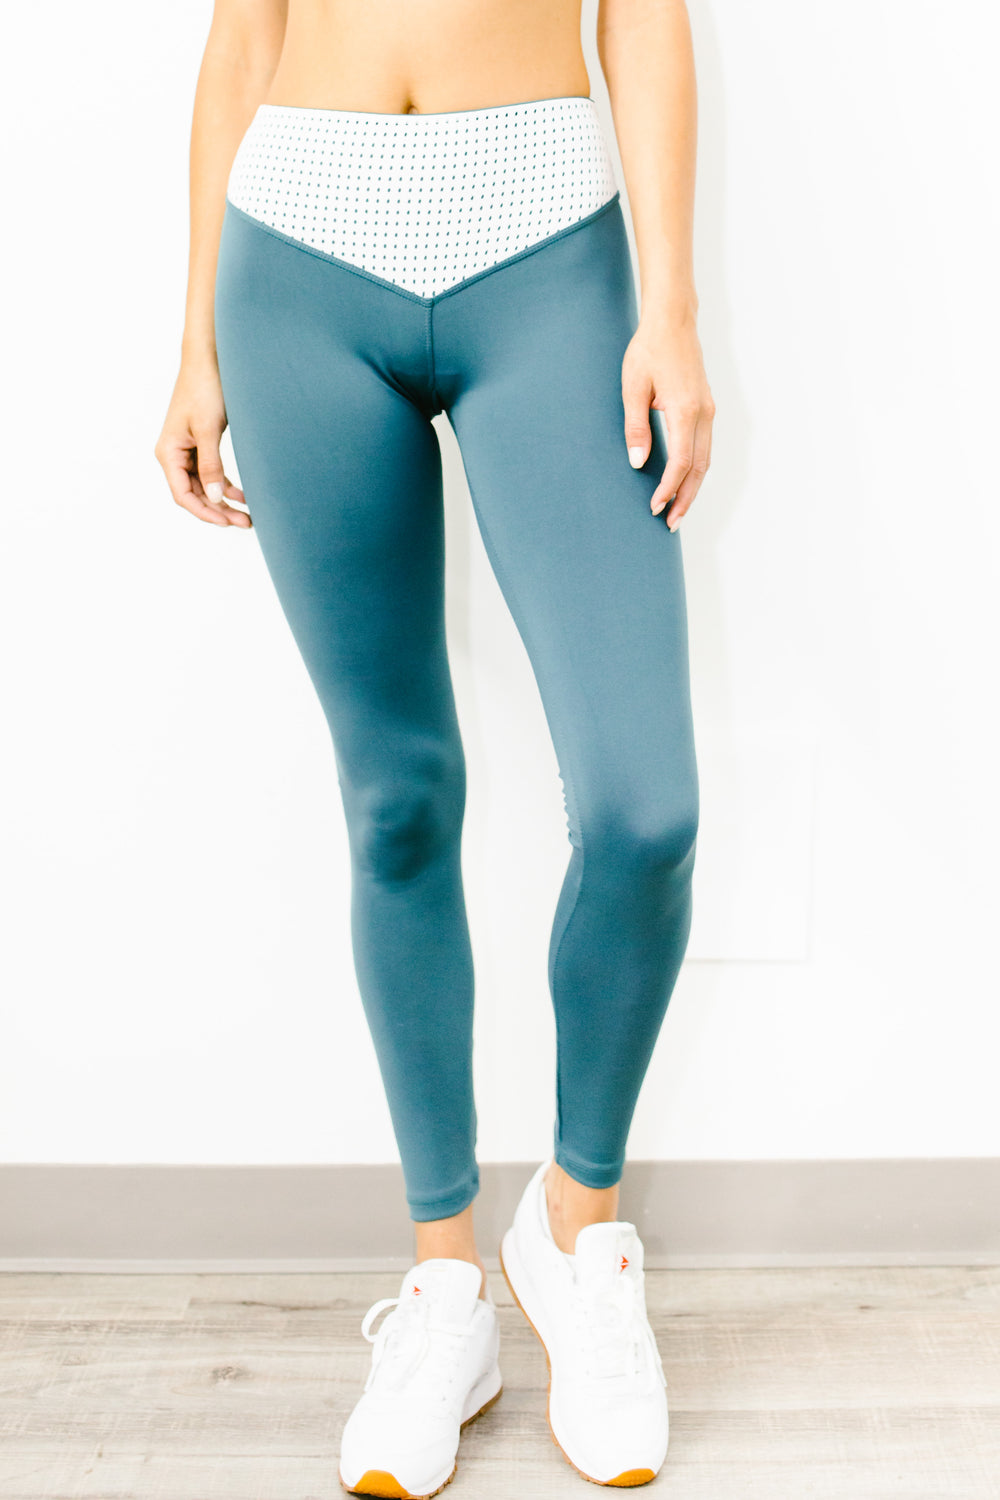 Mateo Full Length Legging in Teal